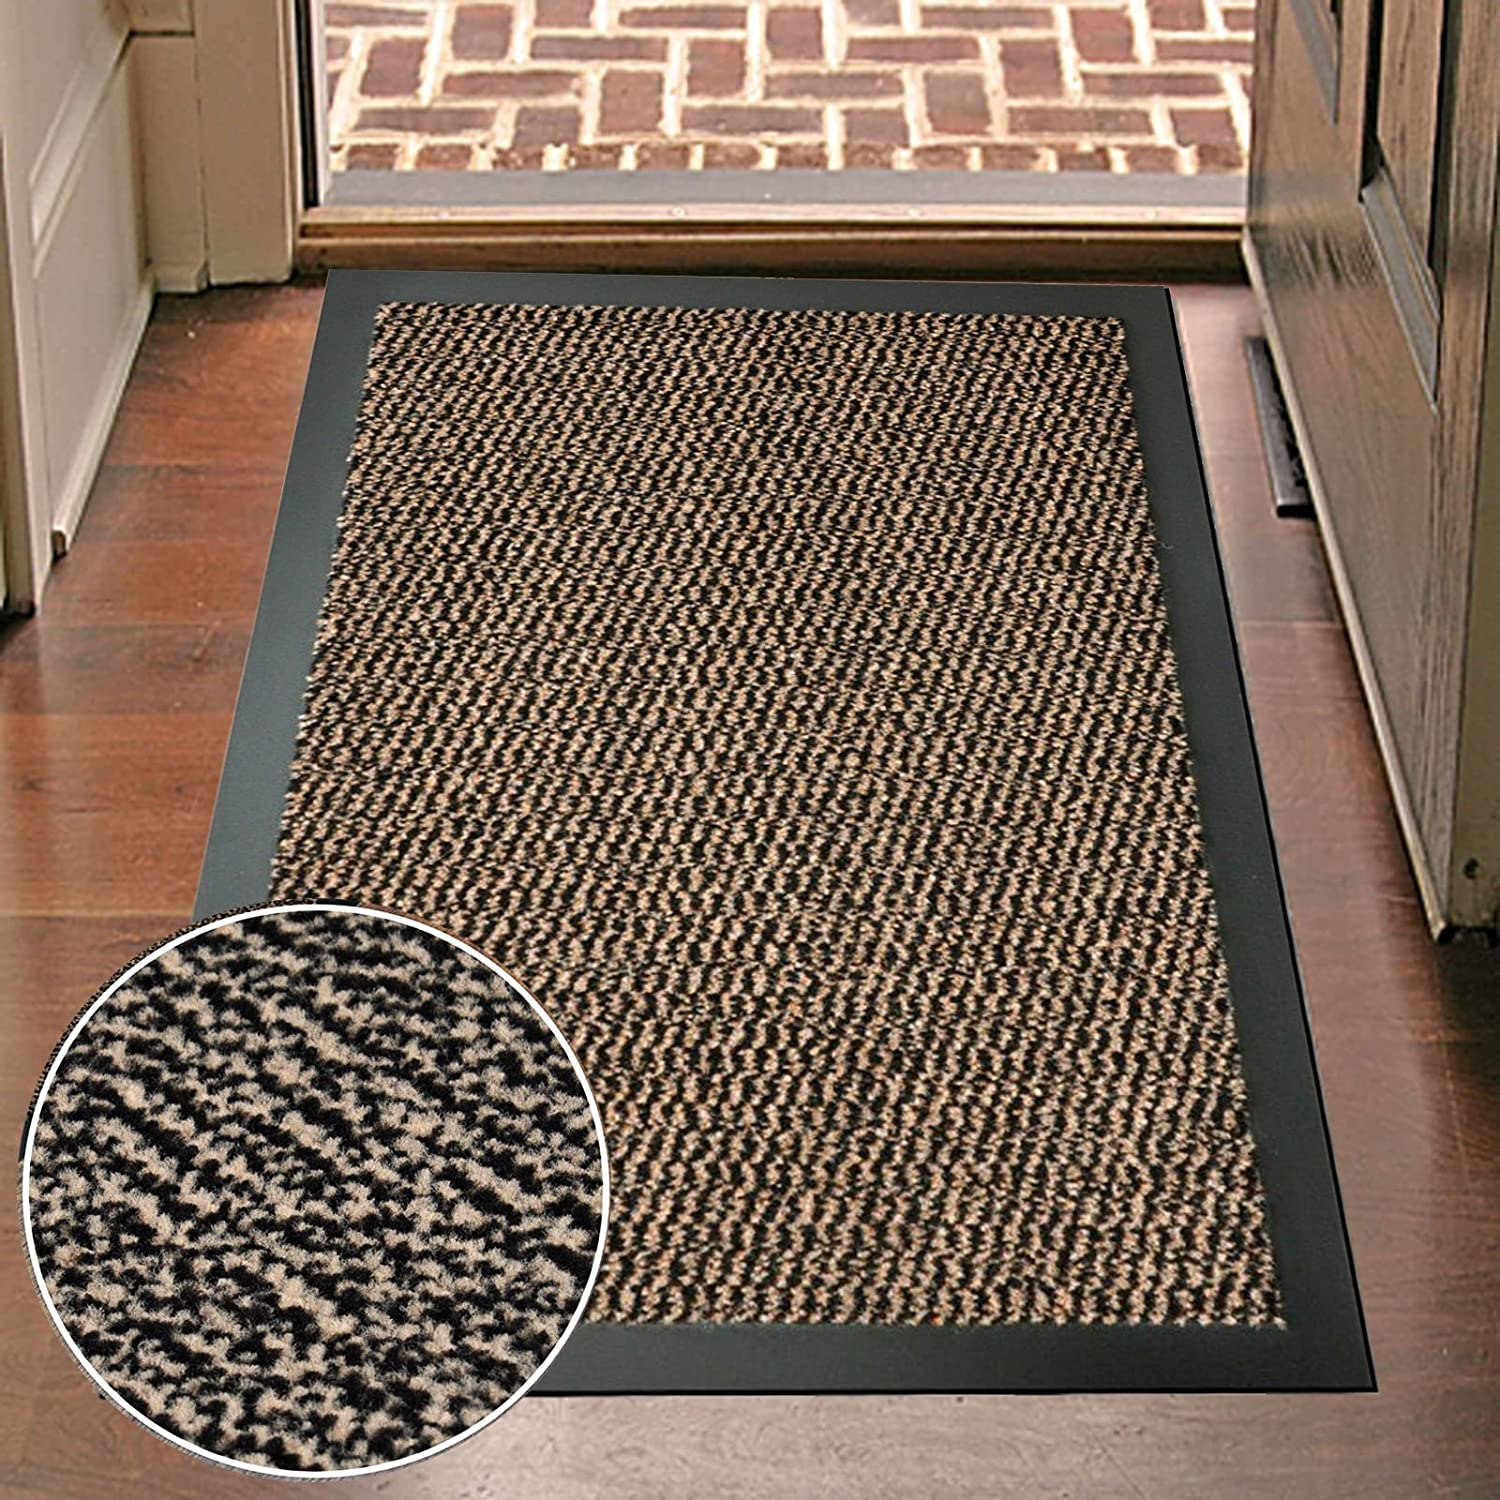 Large 80 x 120cm High Quality Non Slip Machine Washable Commodore Barrier Entrance Mats Kitchens Doors Dirt Trapper-Brown UR CHOICE